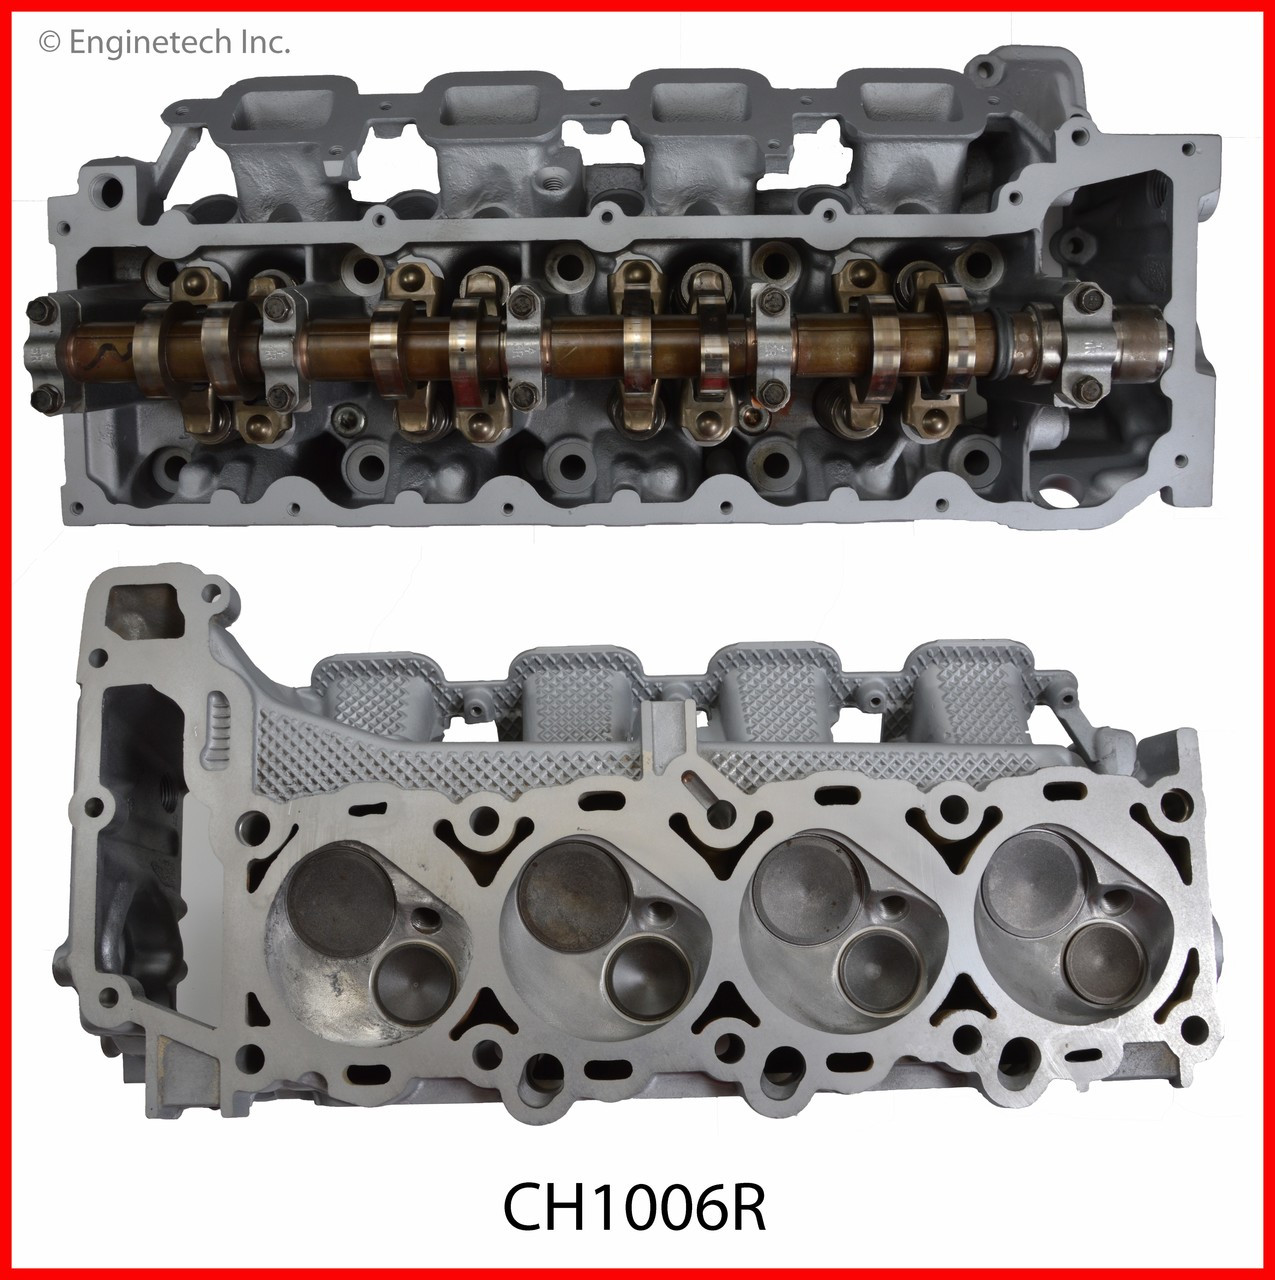 Jeep 4.7 Engine >> 2001 Jeep Grand Cherokee 4 7l Engine Cylinder Head Assembly Ch1006r 7